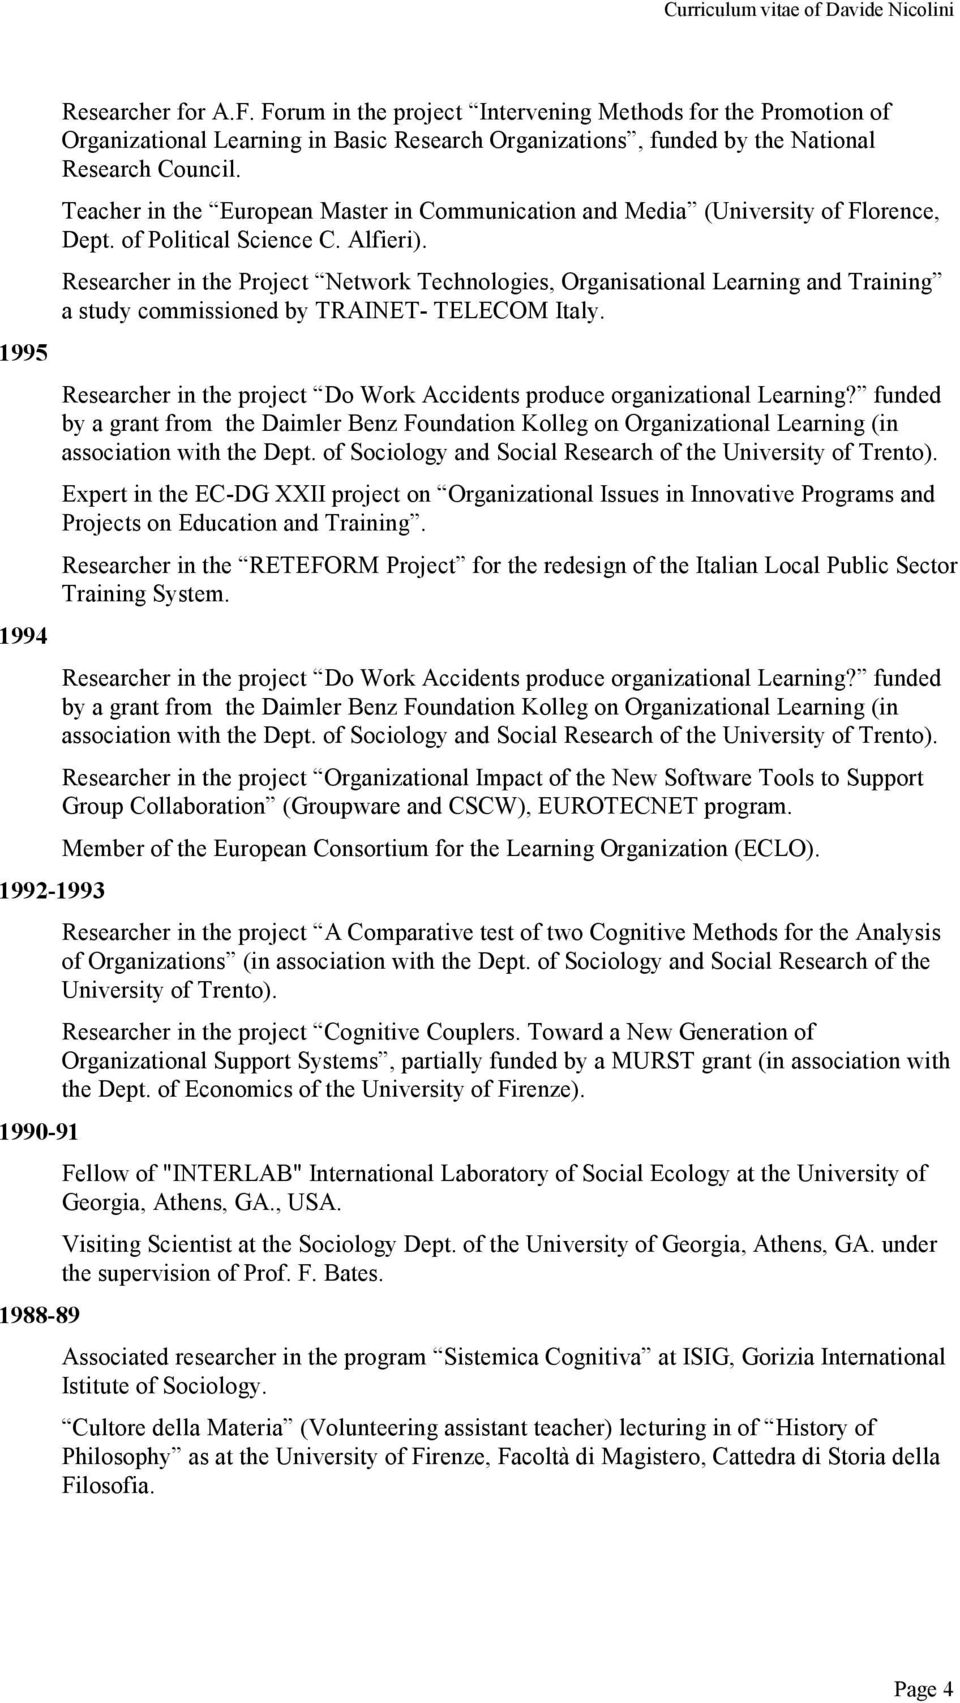 Teacher in the European Master in Communication and Media (University of Florence, Dept. of Political Science C. Alfieri).